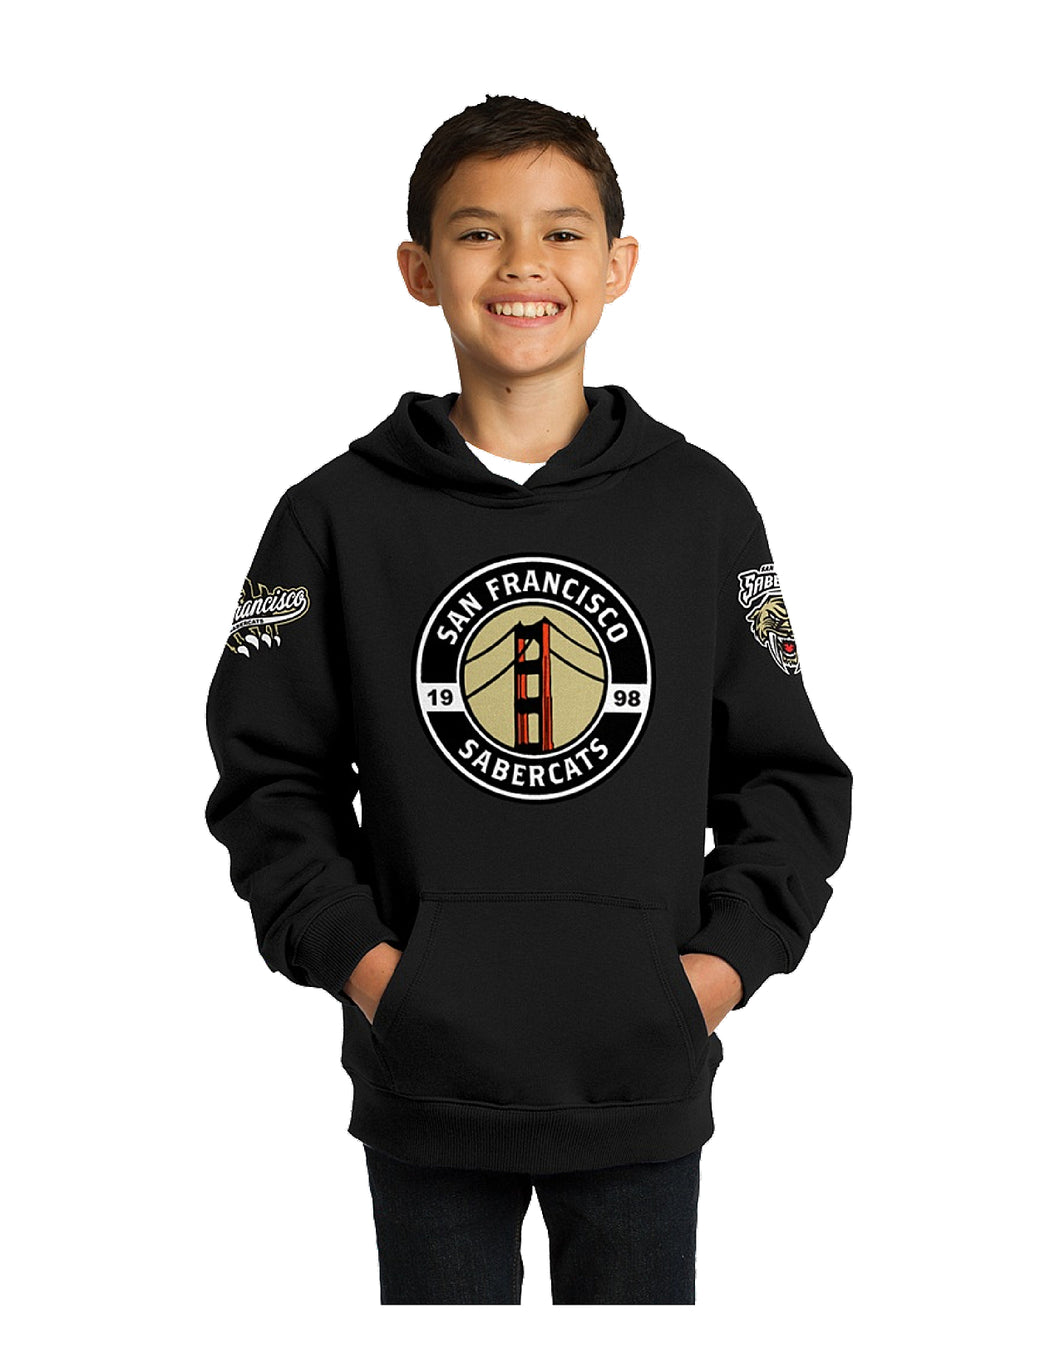 Sabercats Sport-Tek® Youth Pullover Hooded Sweatshirt Black with Screen Printed Sabercats Three Logos (YST254)